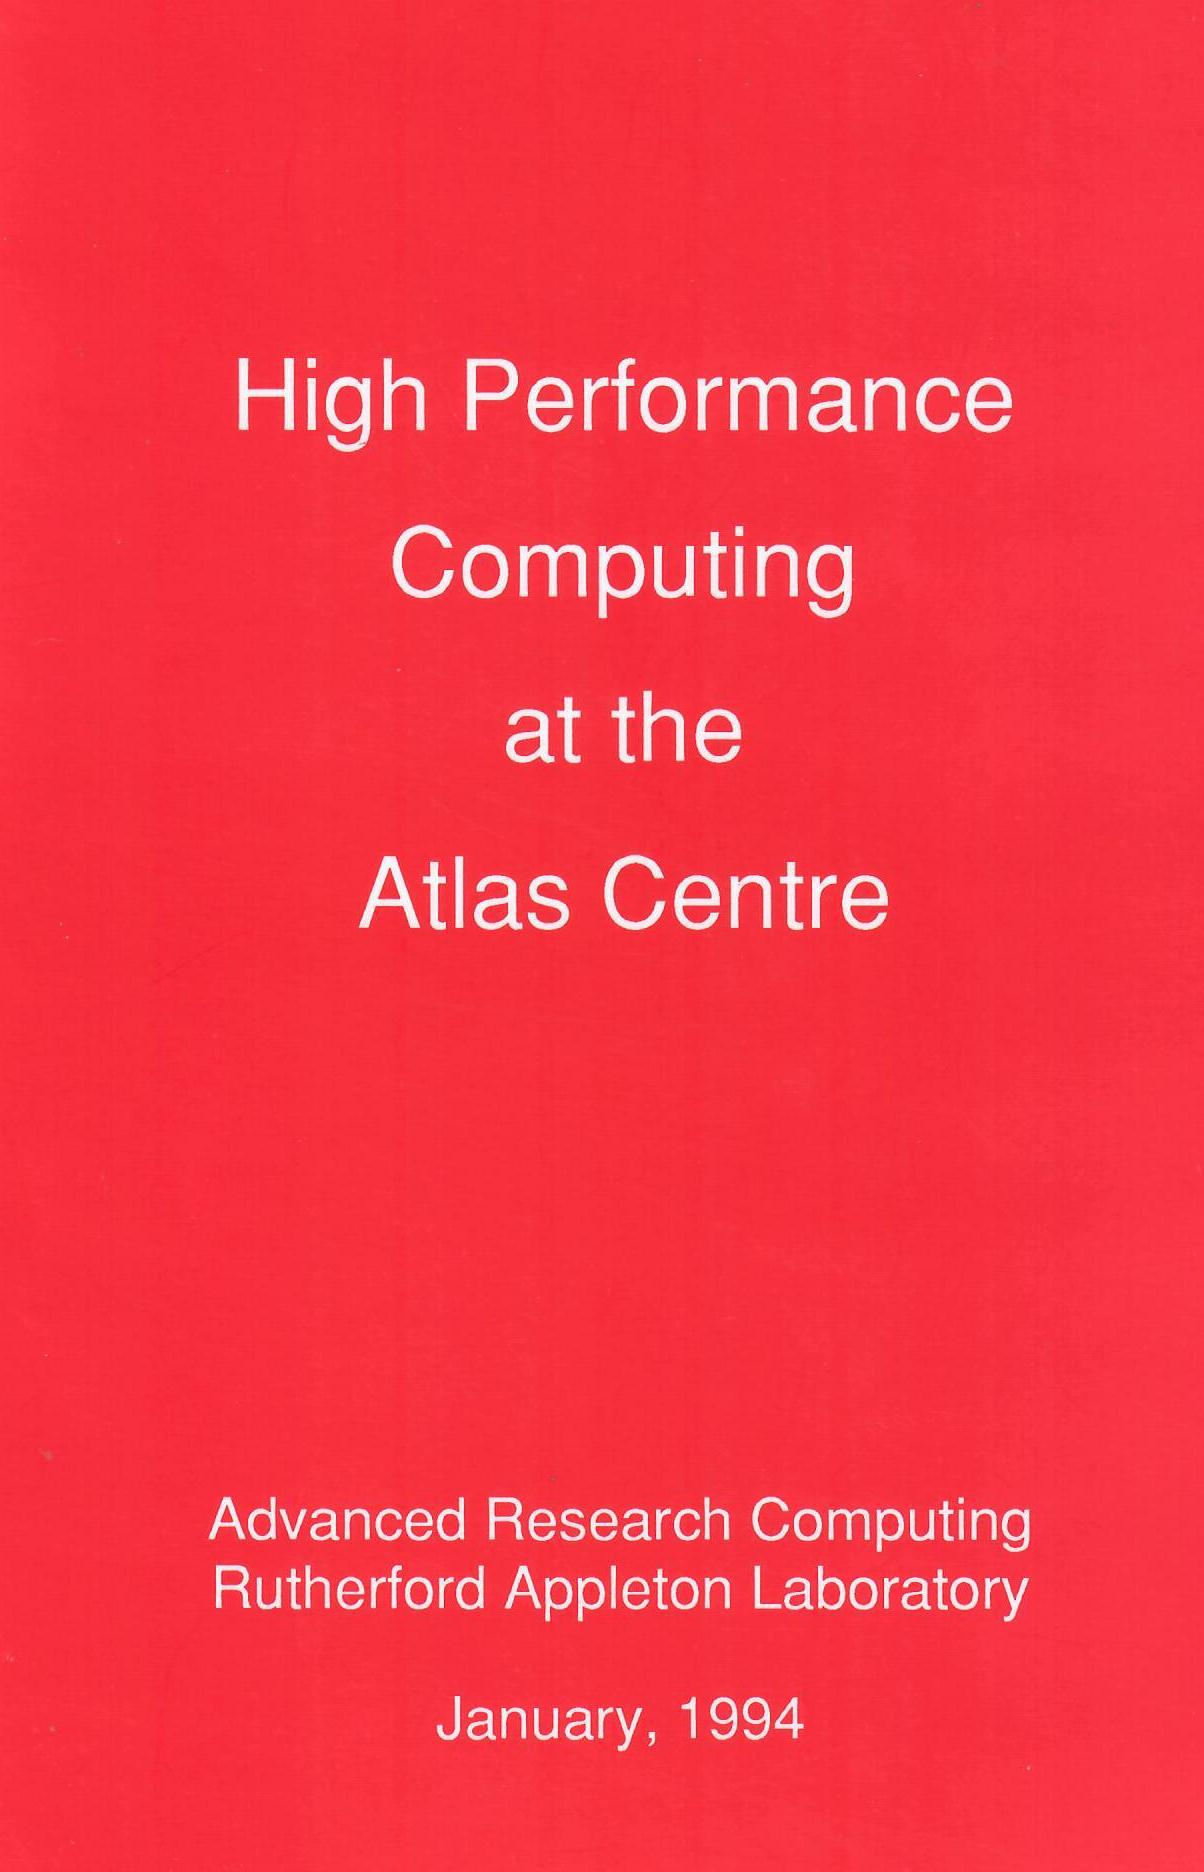 dcbc3c8c2f68 High Performance Computing at the Atlas Centre